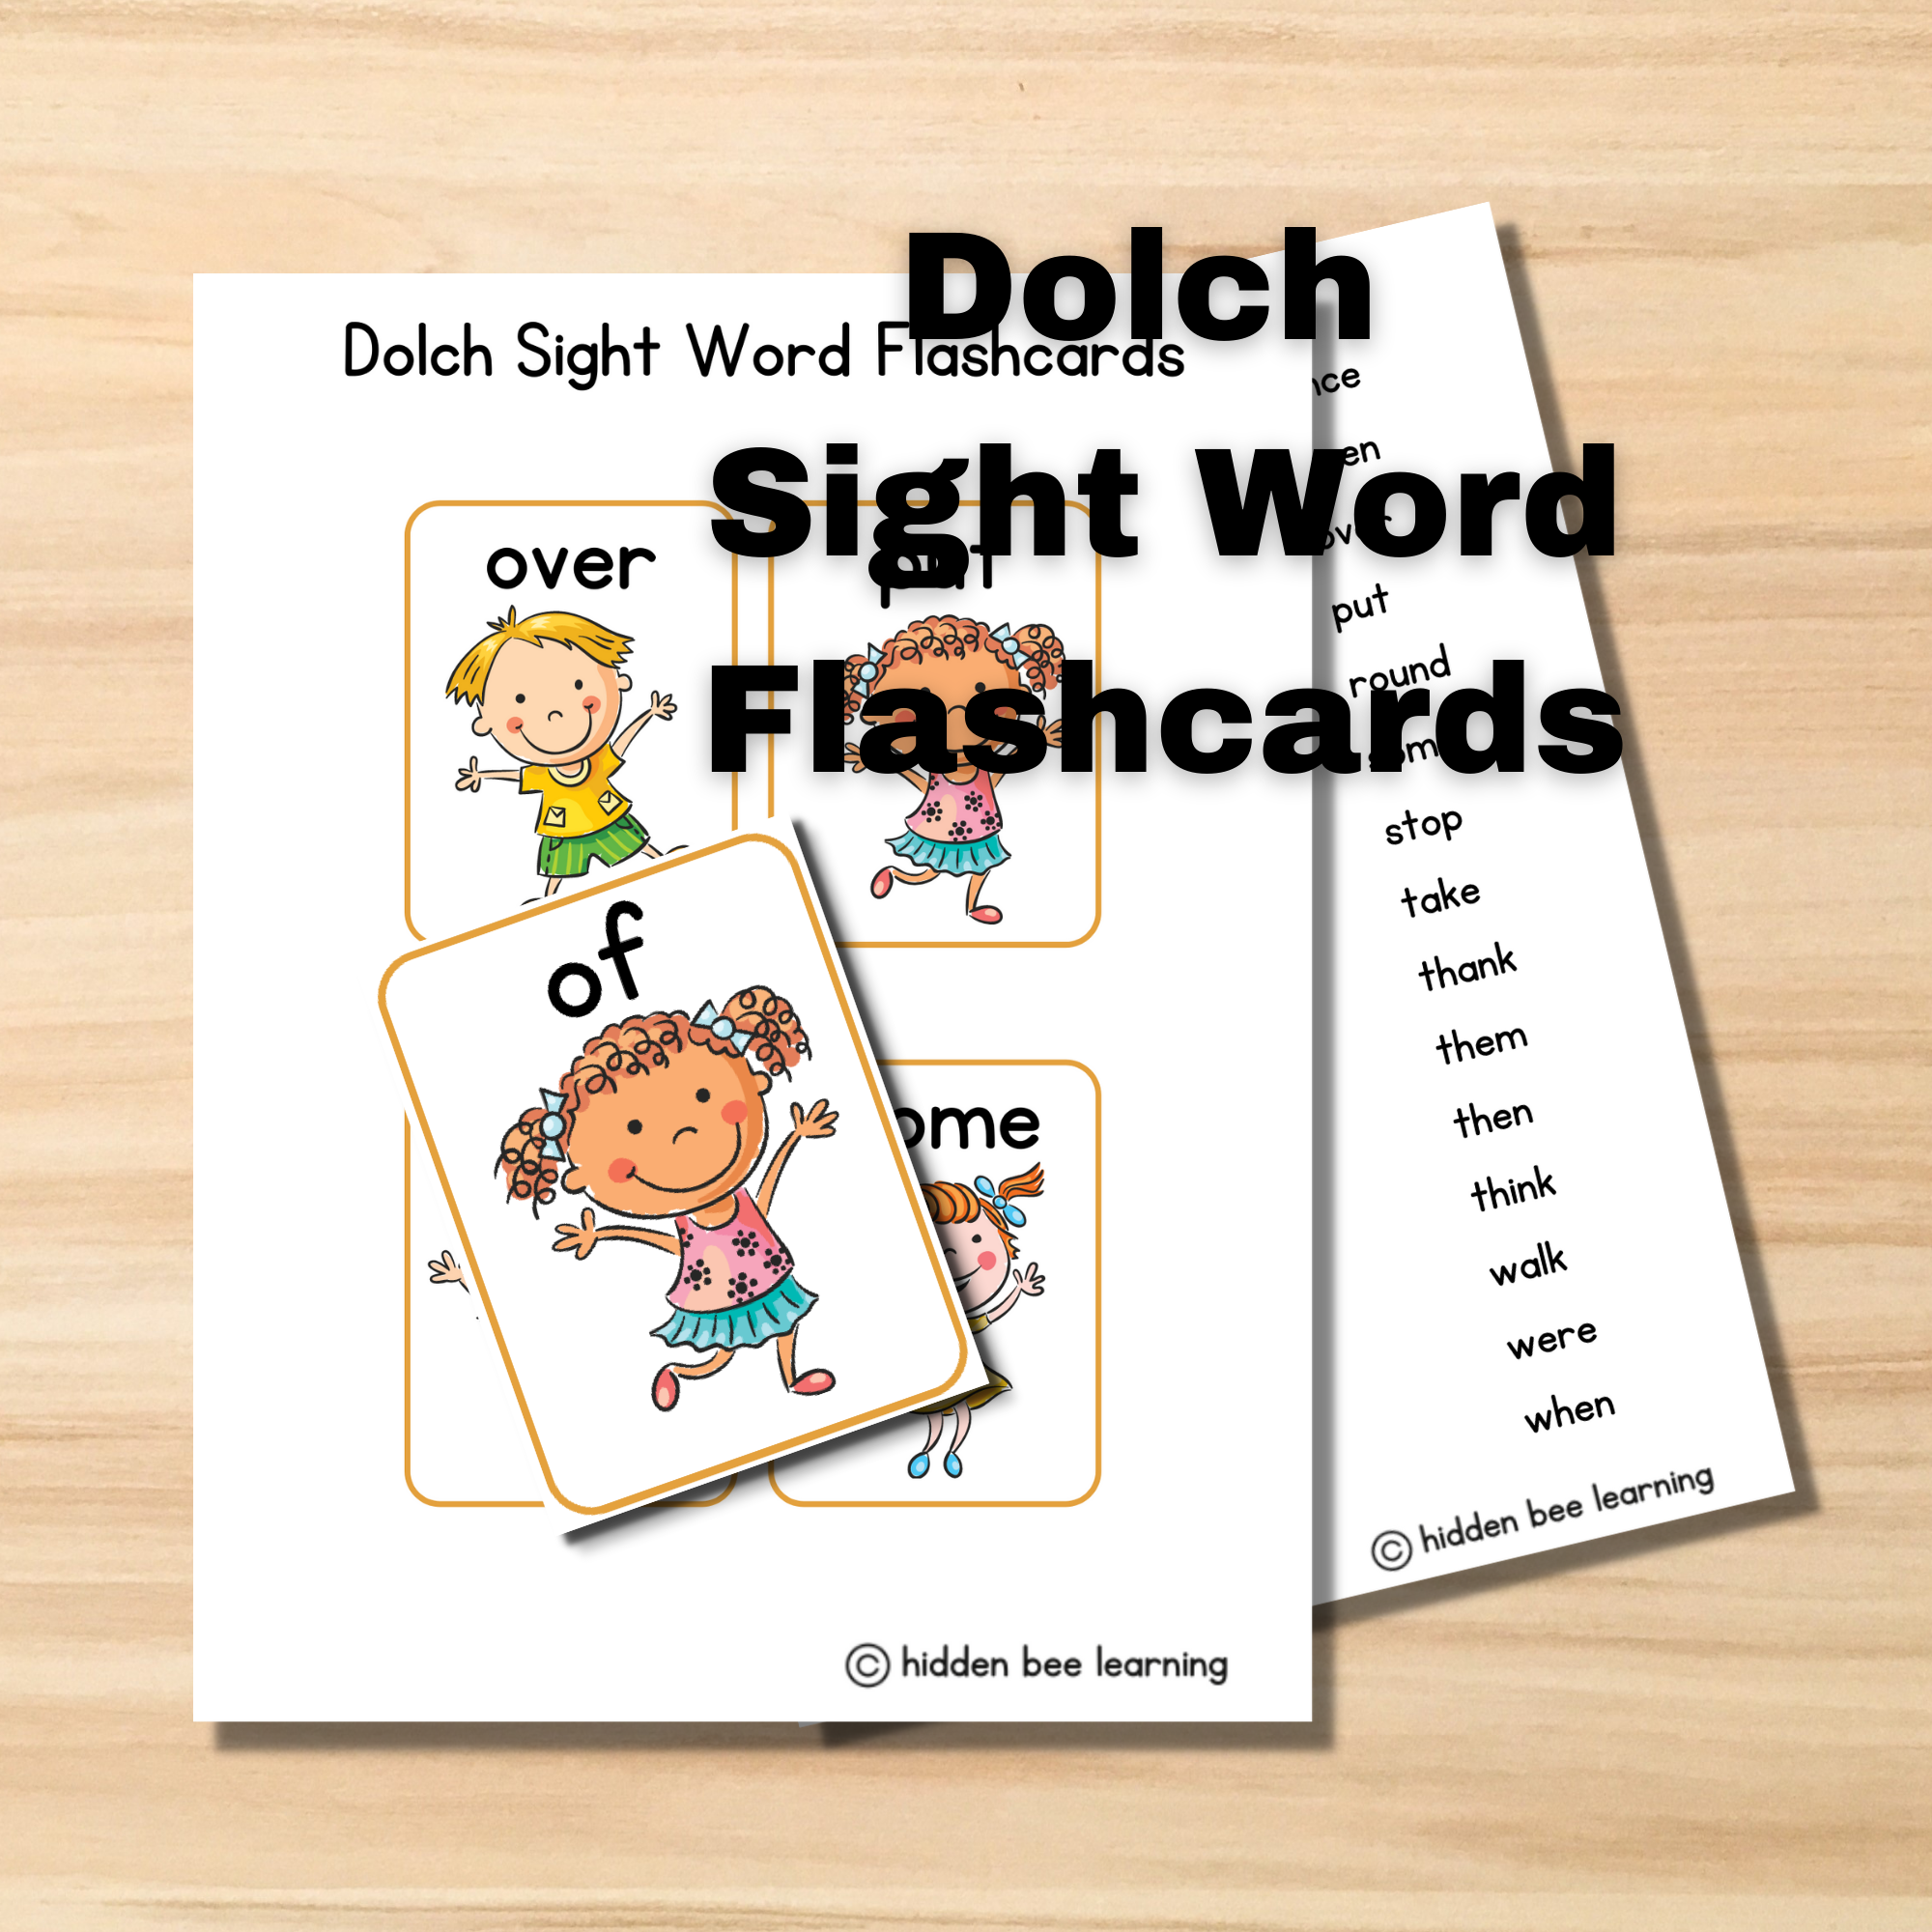 My Dolch Site Word Flashcards